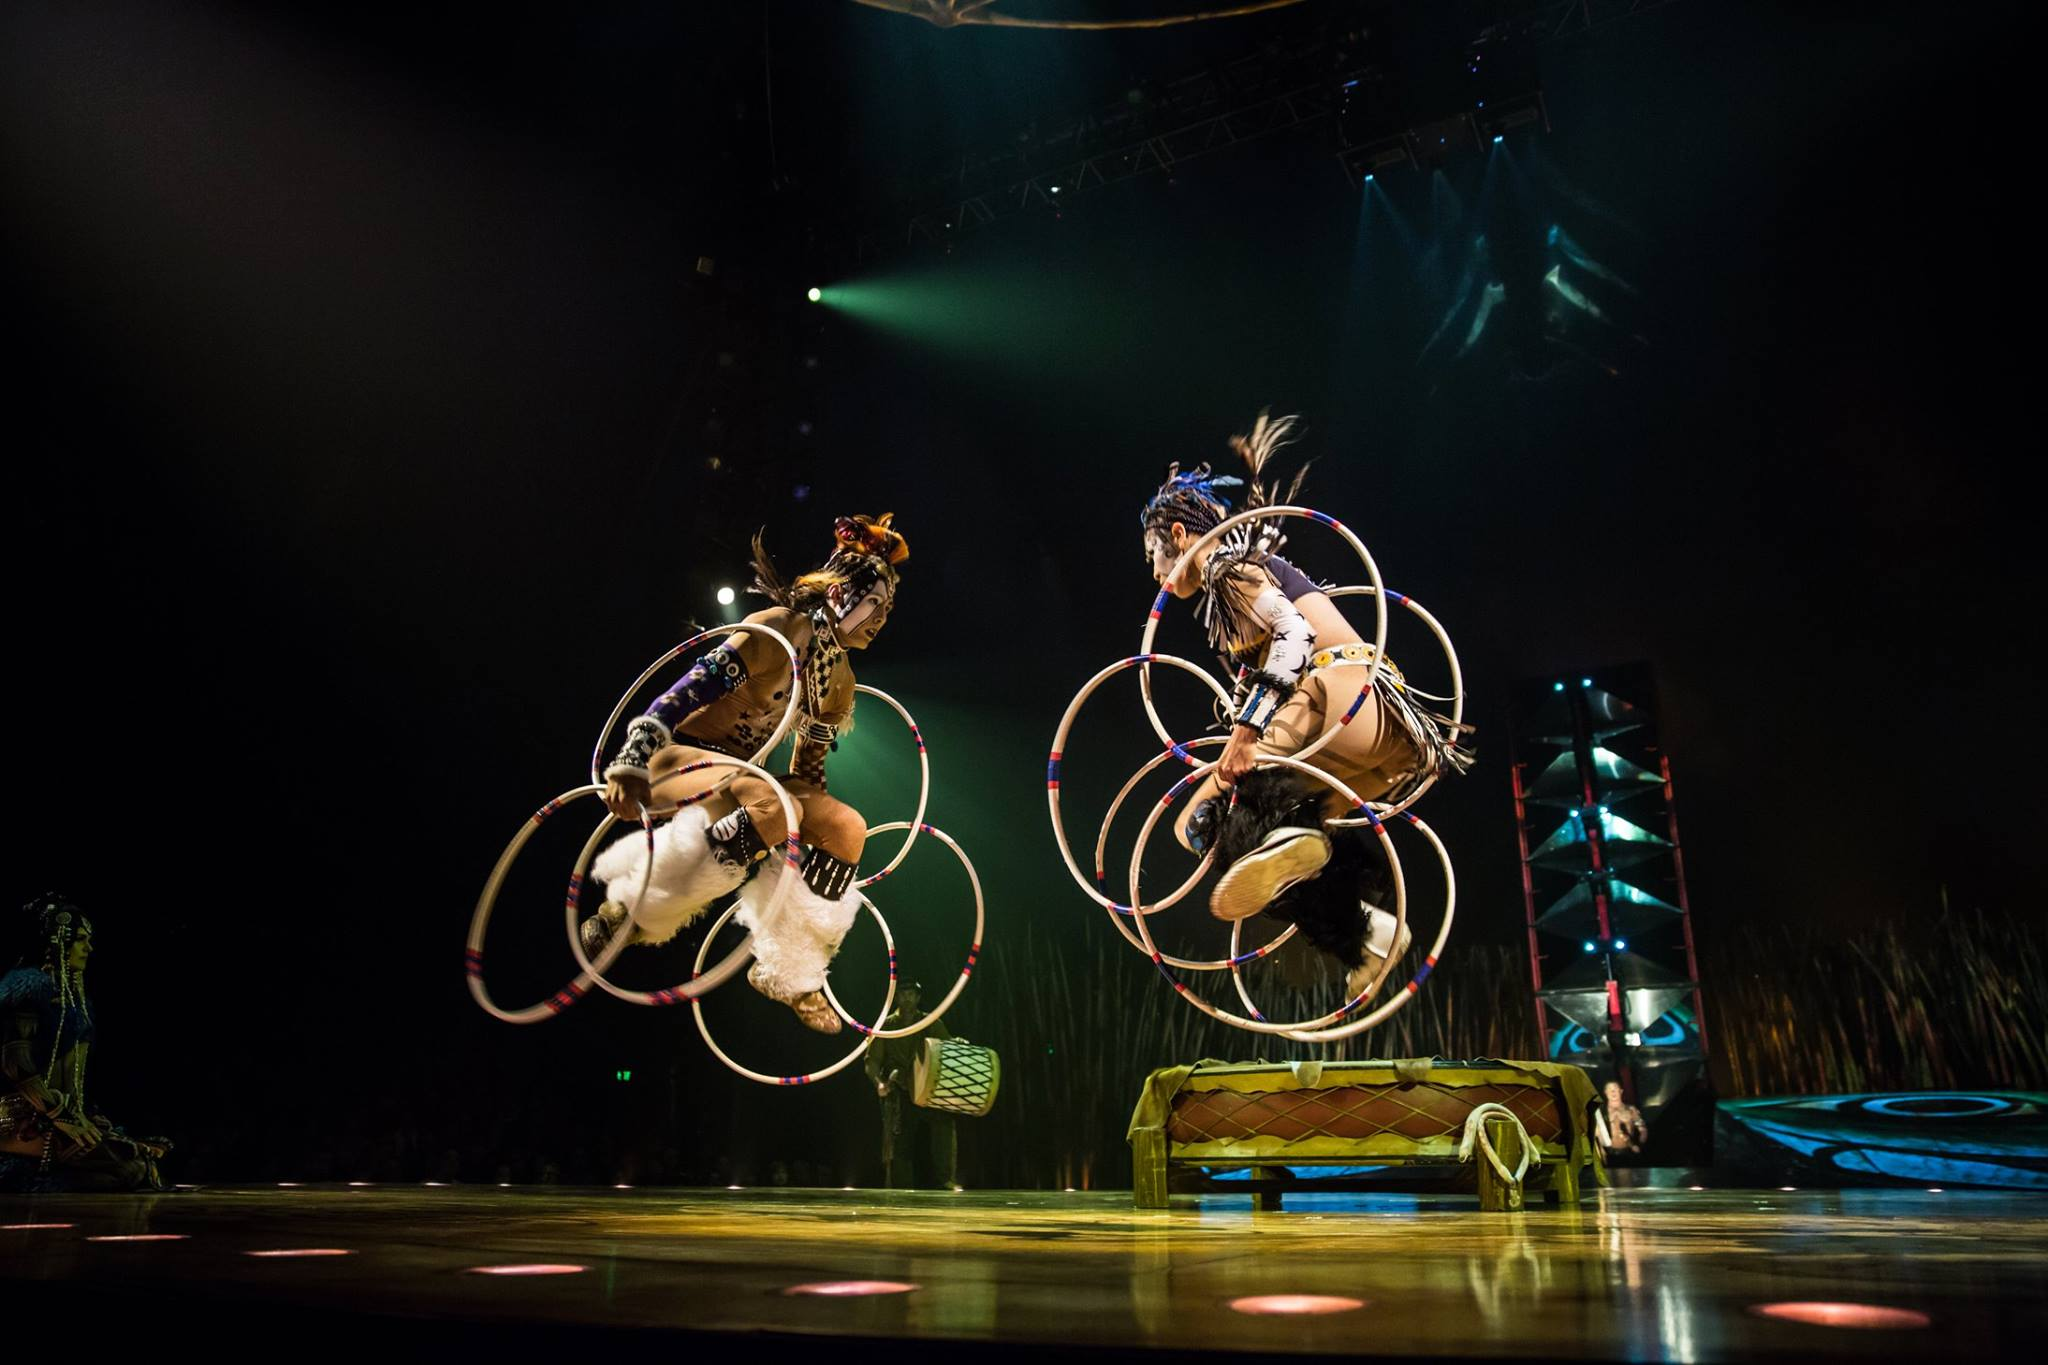 cirque du soleil totem review marina bay sands